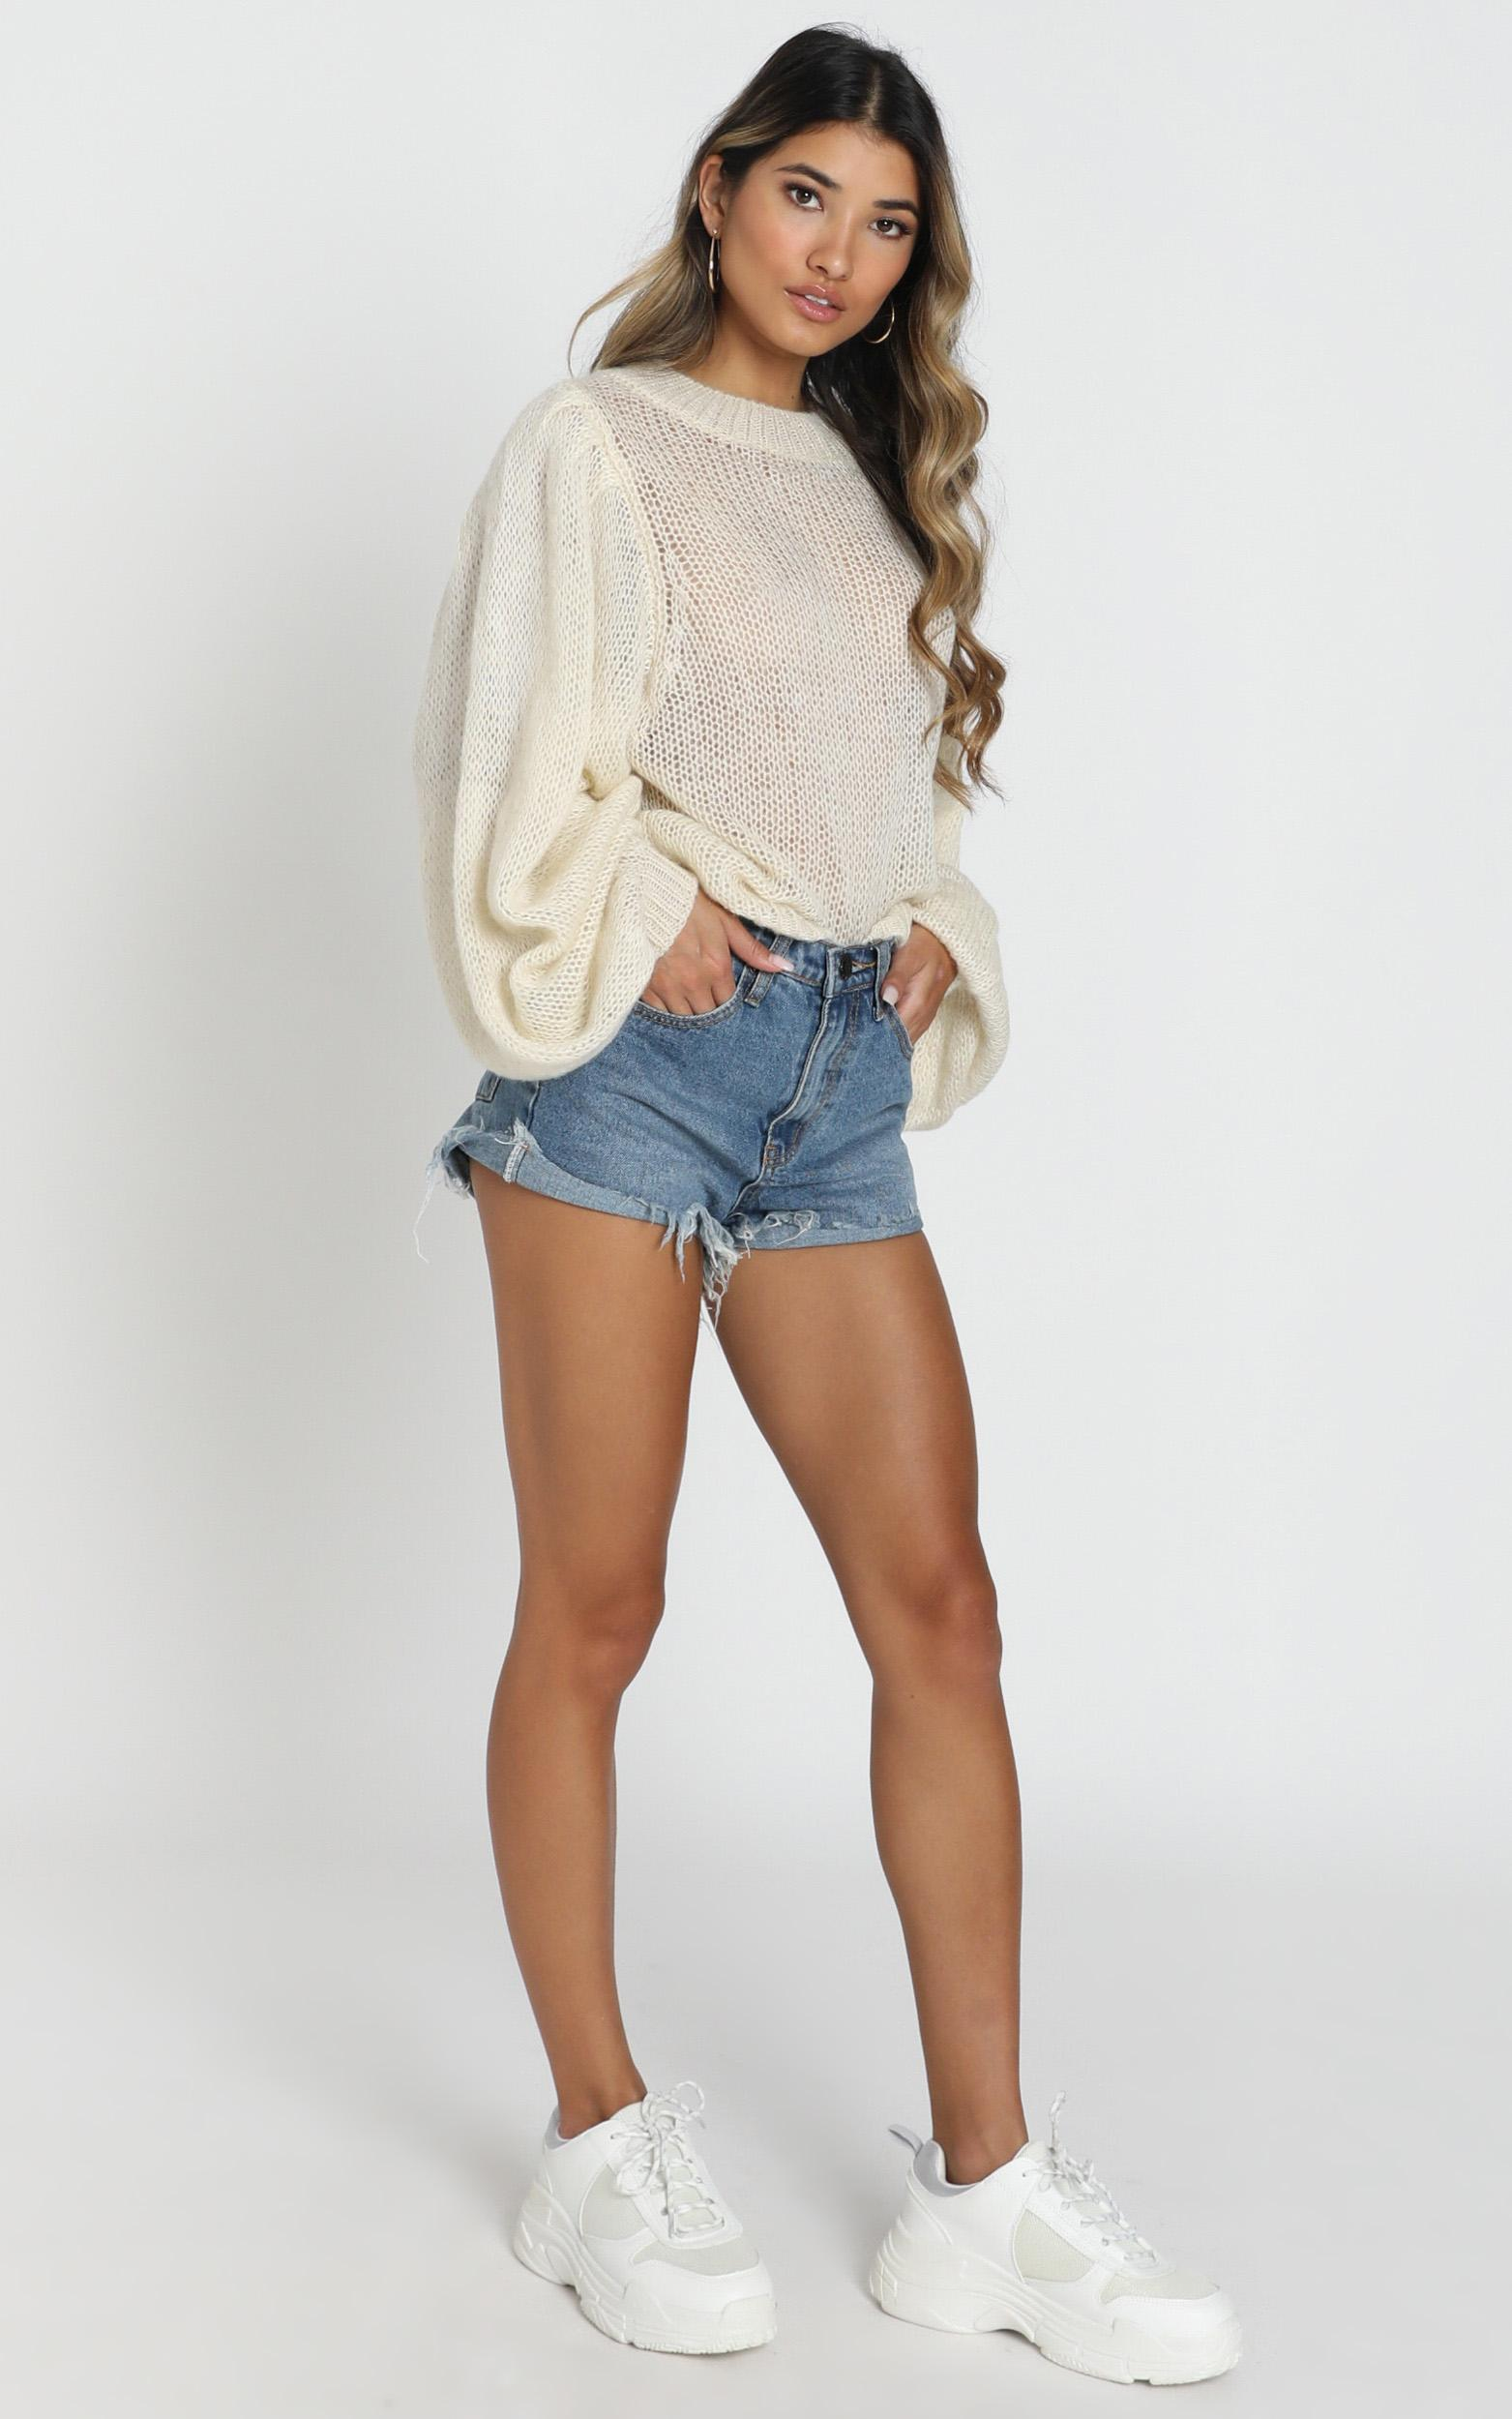 Correcting You Jumper in ivory - 14 (XL), Cream, hi-res image number null